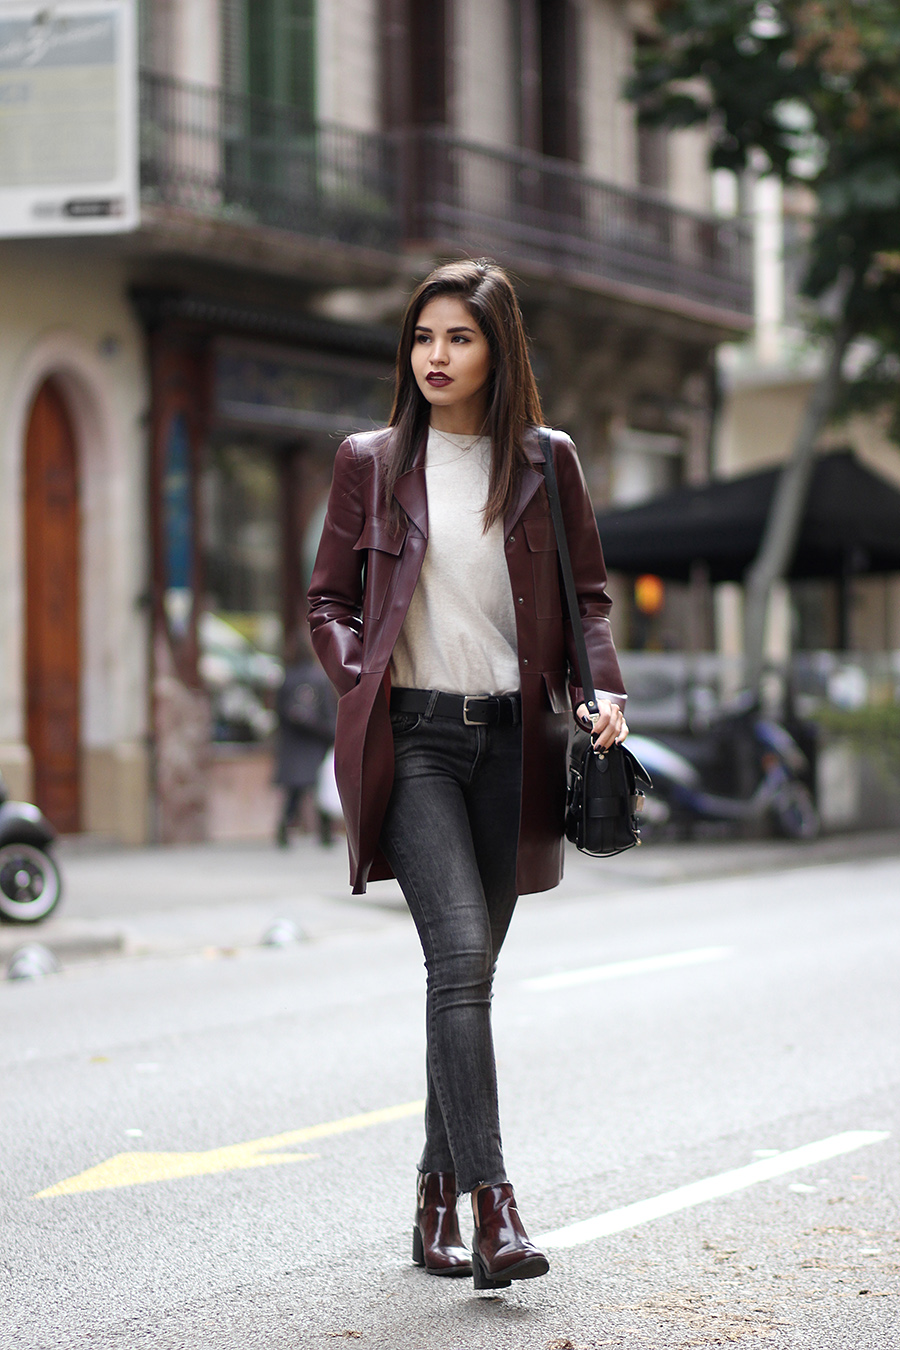 Adriana Gastélum is wearing a burgundy leather jacket and boots from Zara